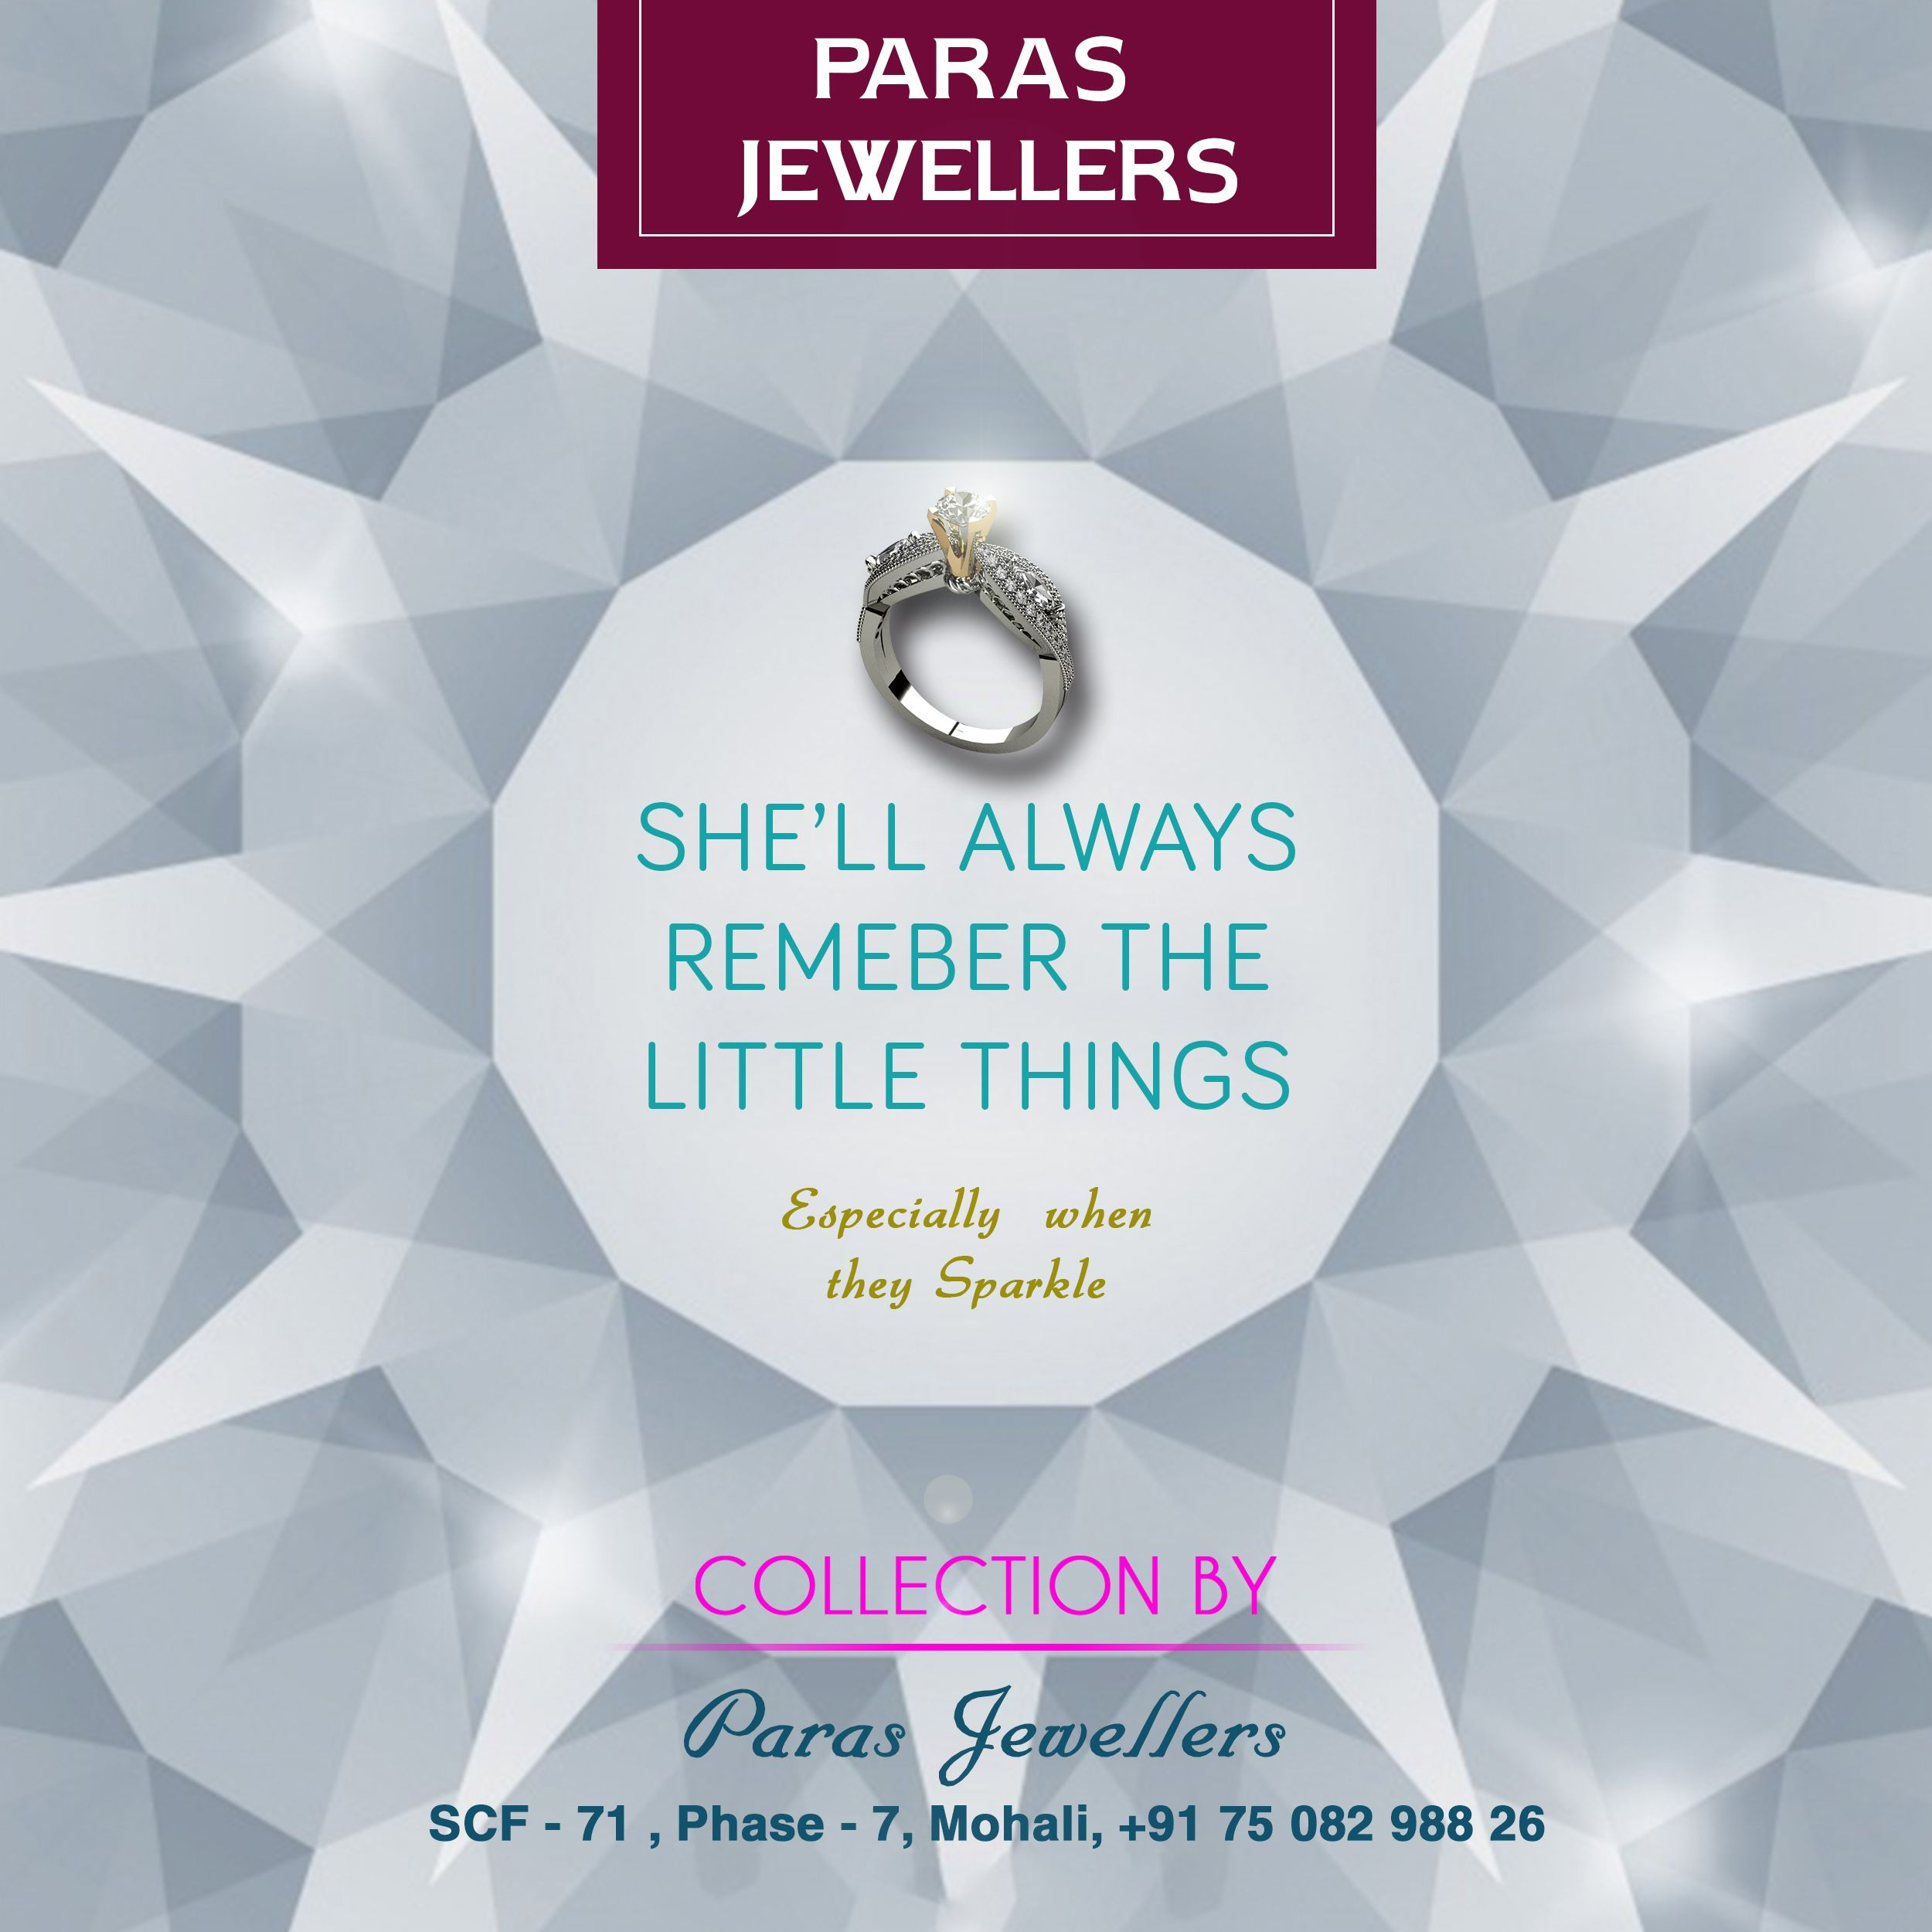 She Ll Always Remember The Little Things Especially When They Sparkle And Shine Paras Jewellers Mohali Call Us 91 7508298826 Visit At Scf No 71